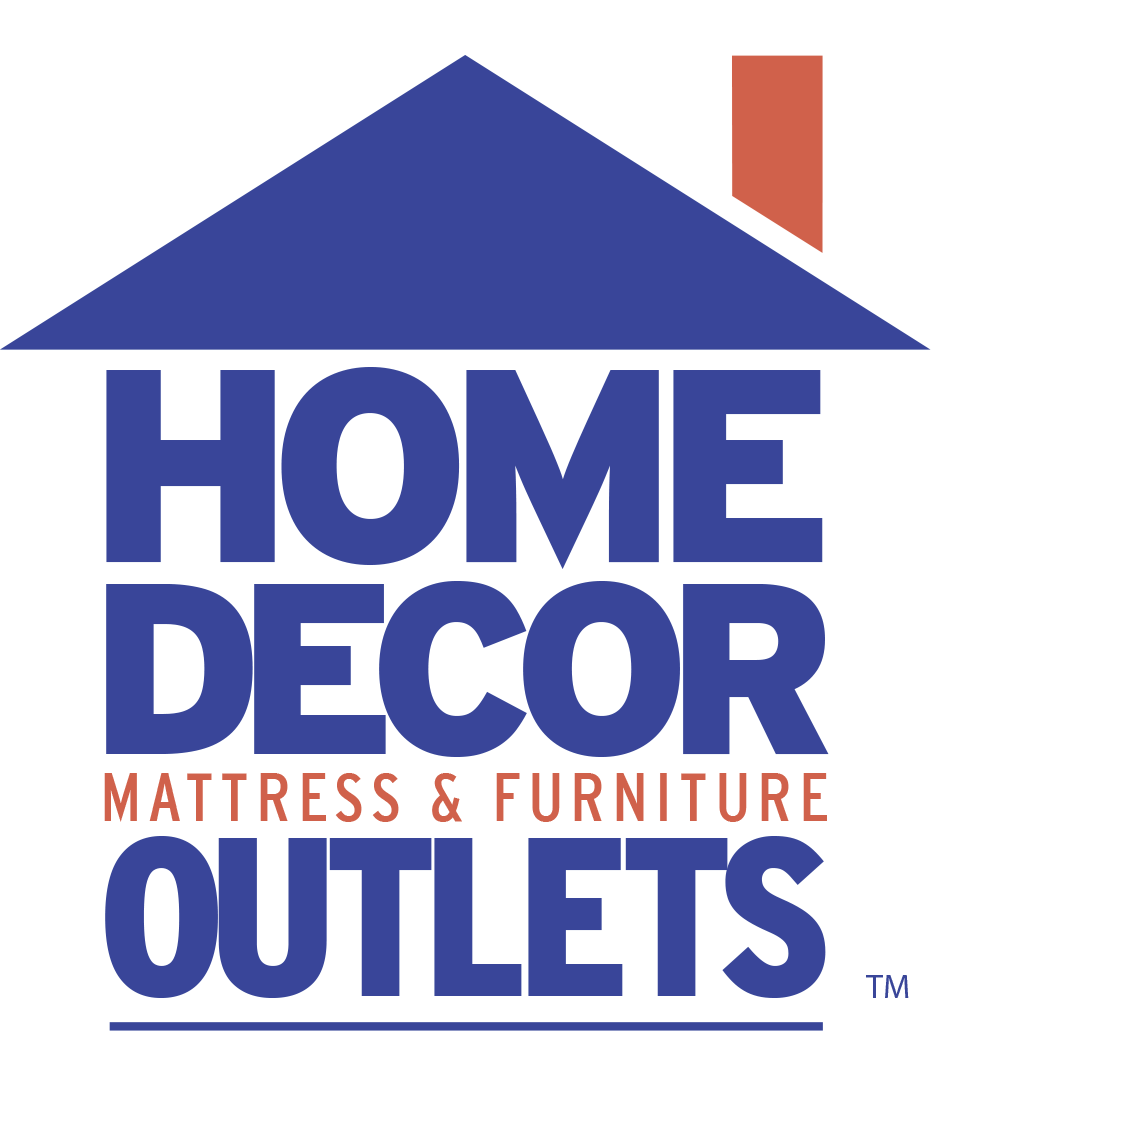 Home Decor Outlets 9100 E Hampton Dr Capitol Heights MD Furniture